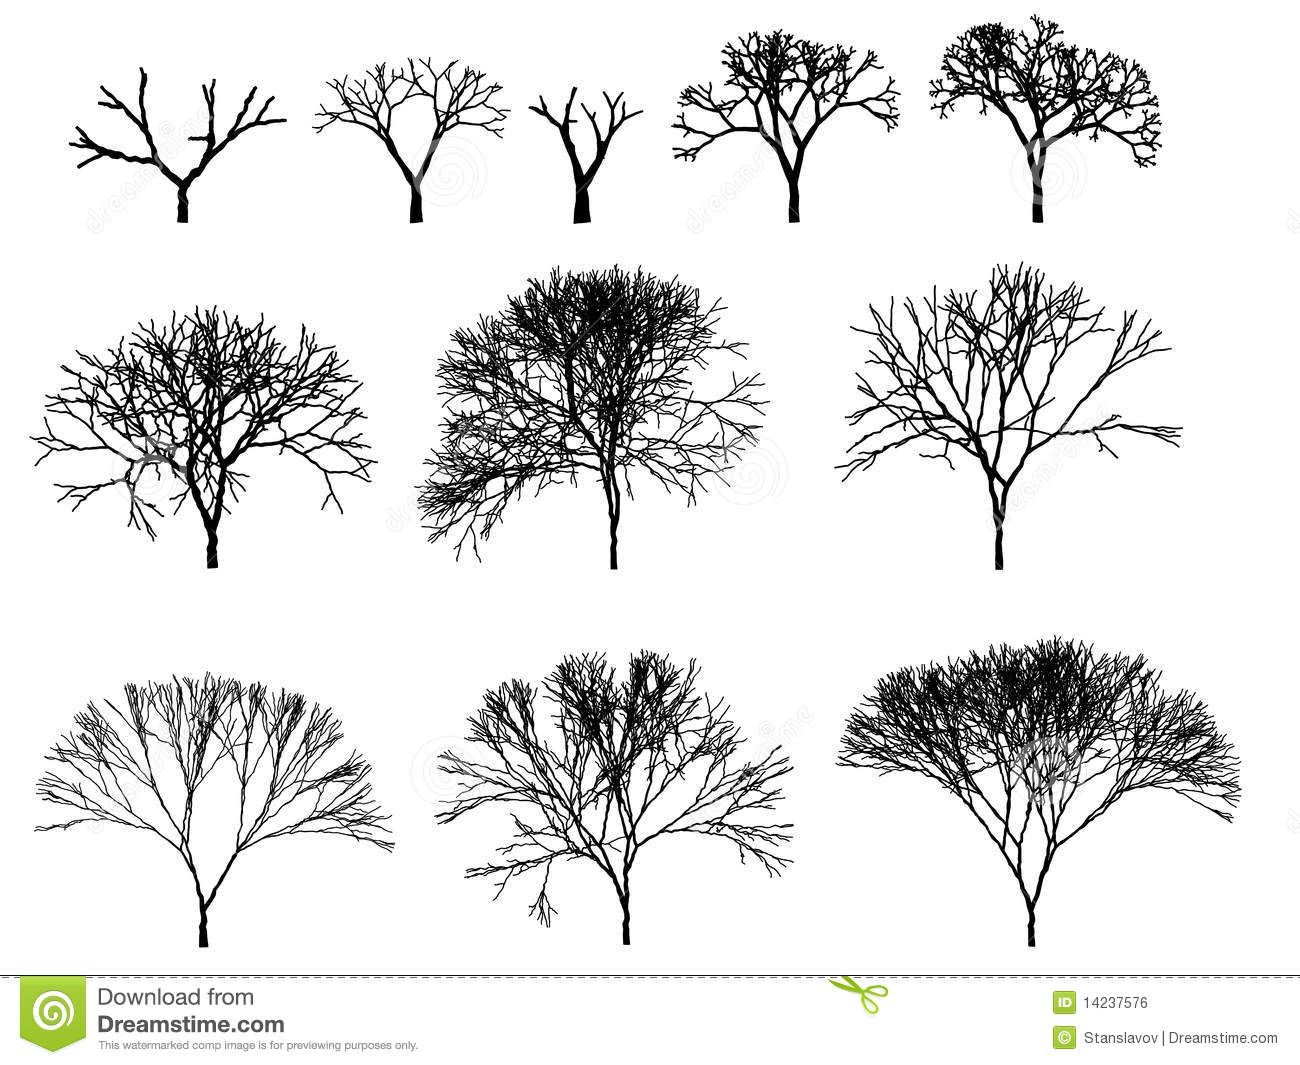 tree architecture drawing google search - Architecture Drawing Of Trees